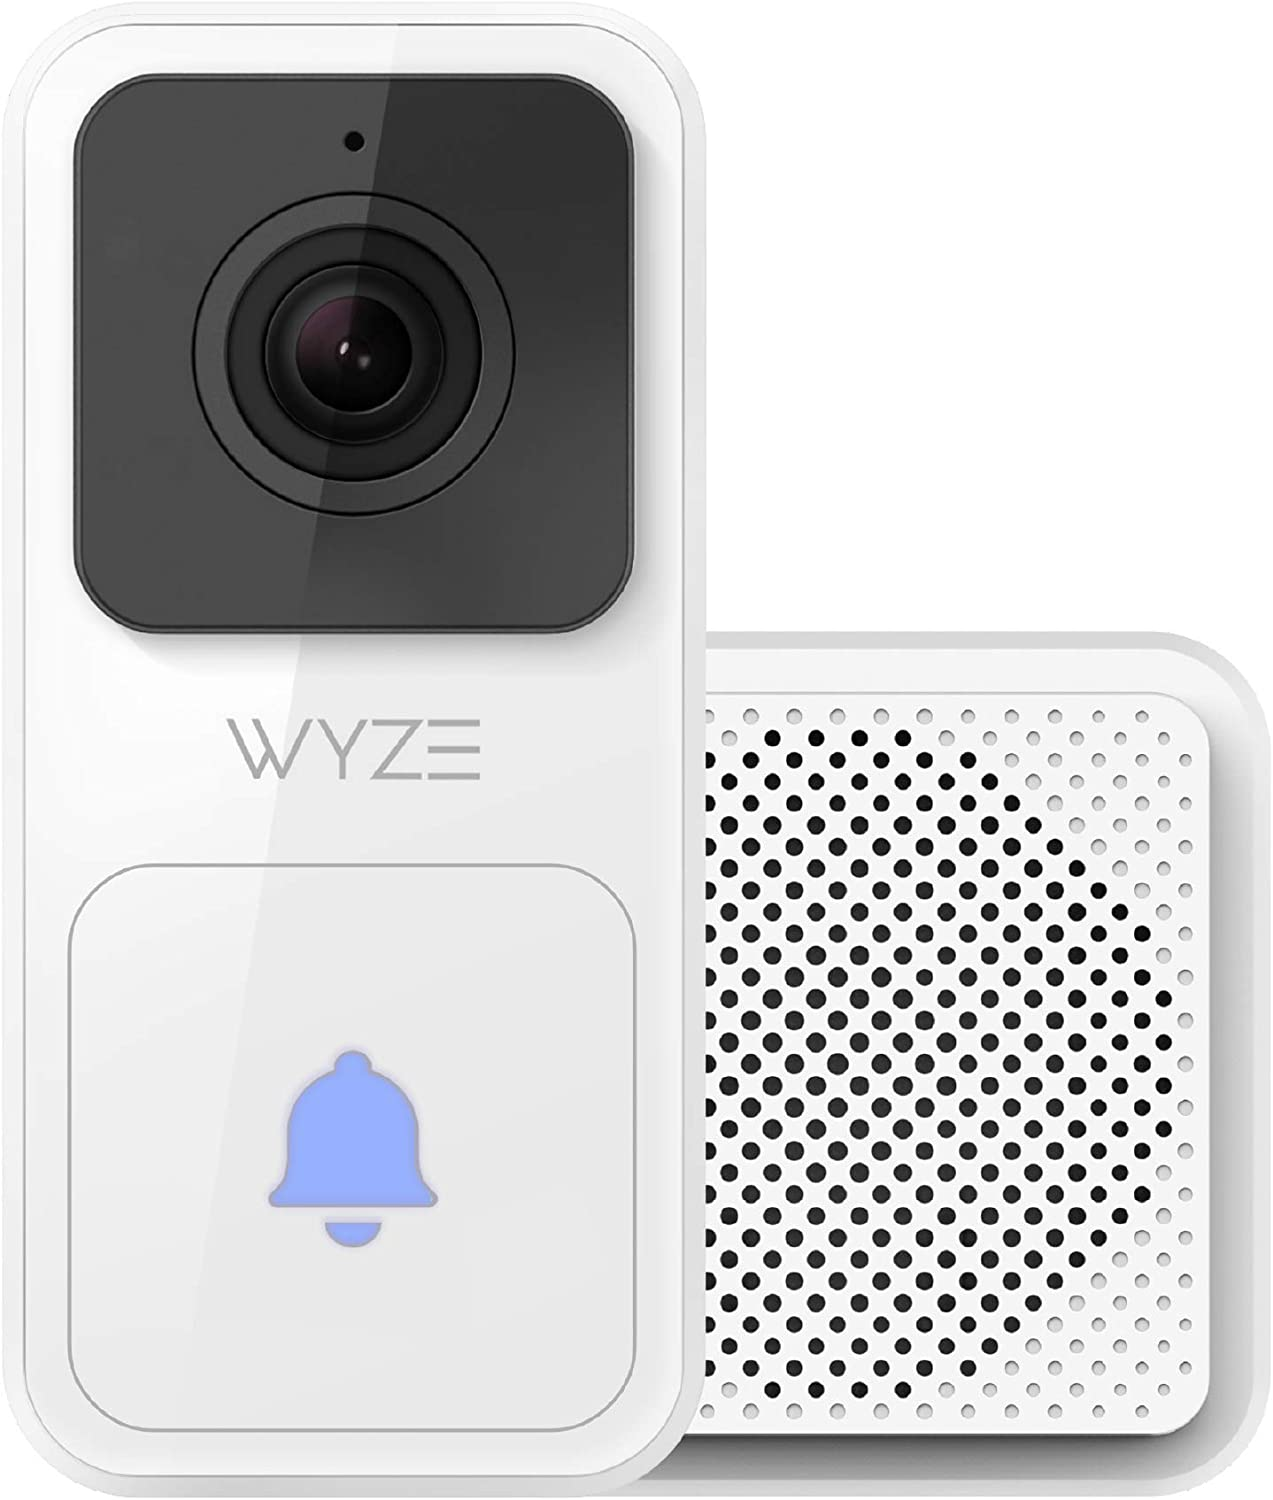 Wyze Video Doorbell (Chime Included), 1080p HD Video, 3:4 Aspect Ratio: 3:4 Head-to-Toe View, 2-Way Audio, Night Vision, Hardwired